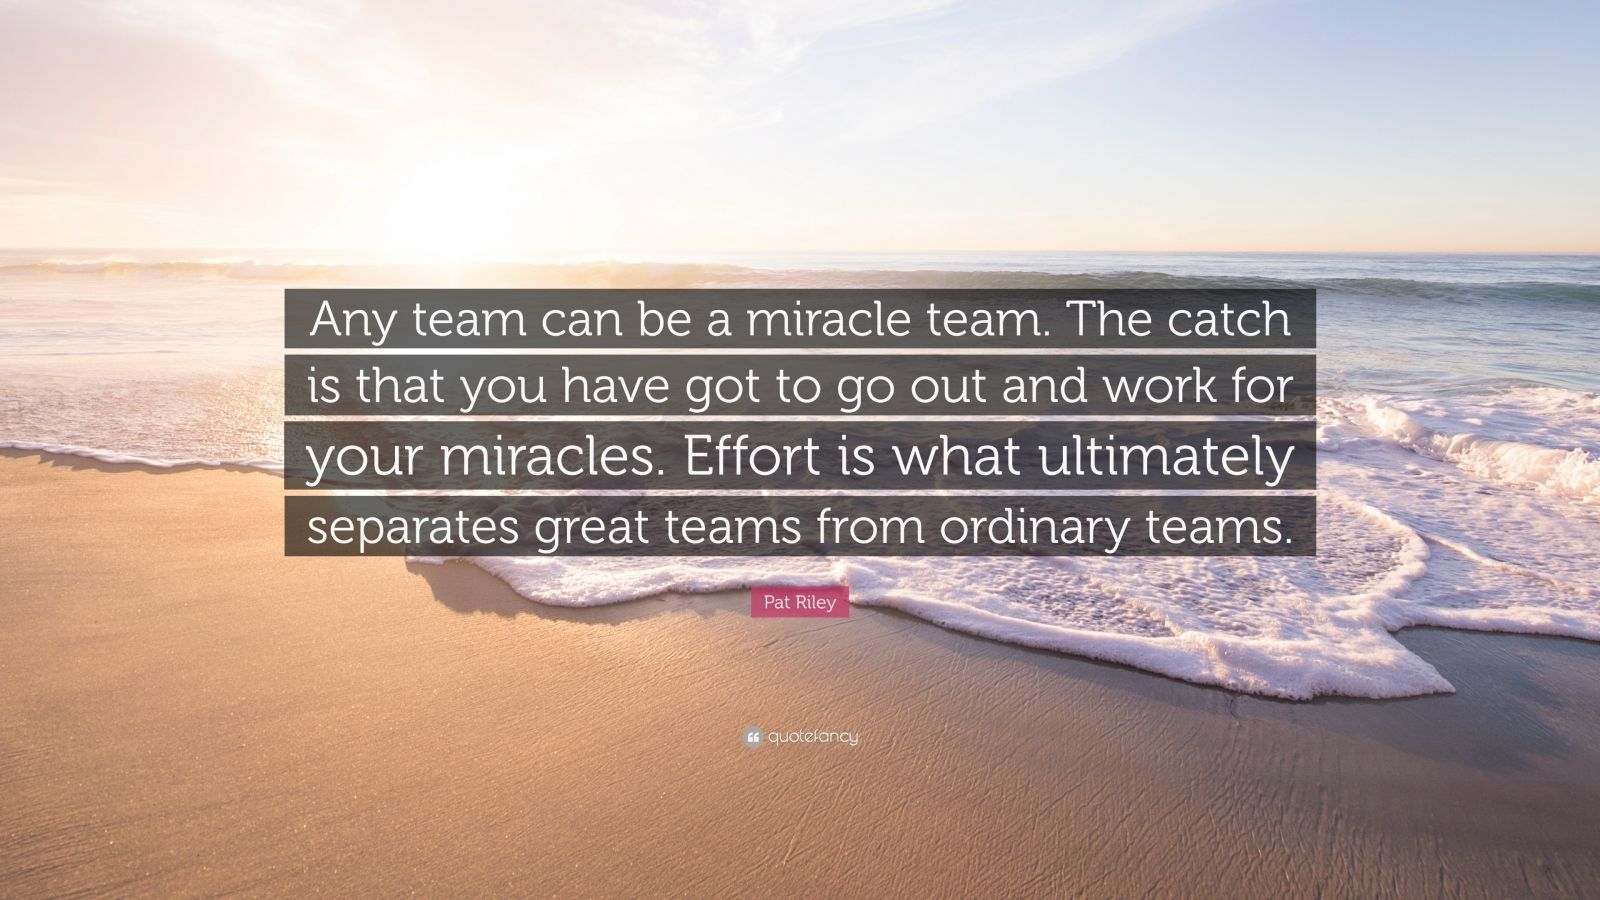 """Pat Riley Quote: """"Any team can be a miracle team. The catch is that you have got to go out and work for your miracles. Effort is what ultimately separates great teams from ordinary teams."""""""